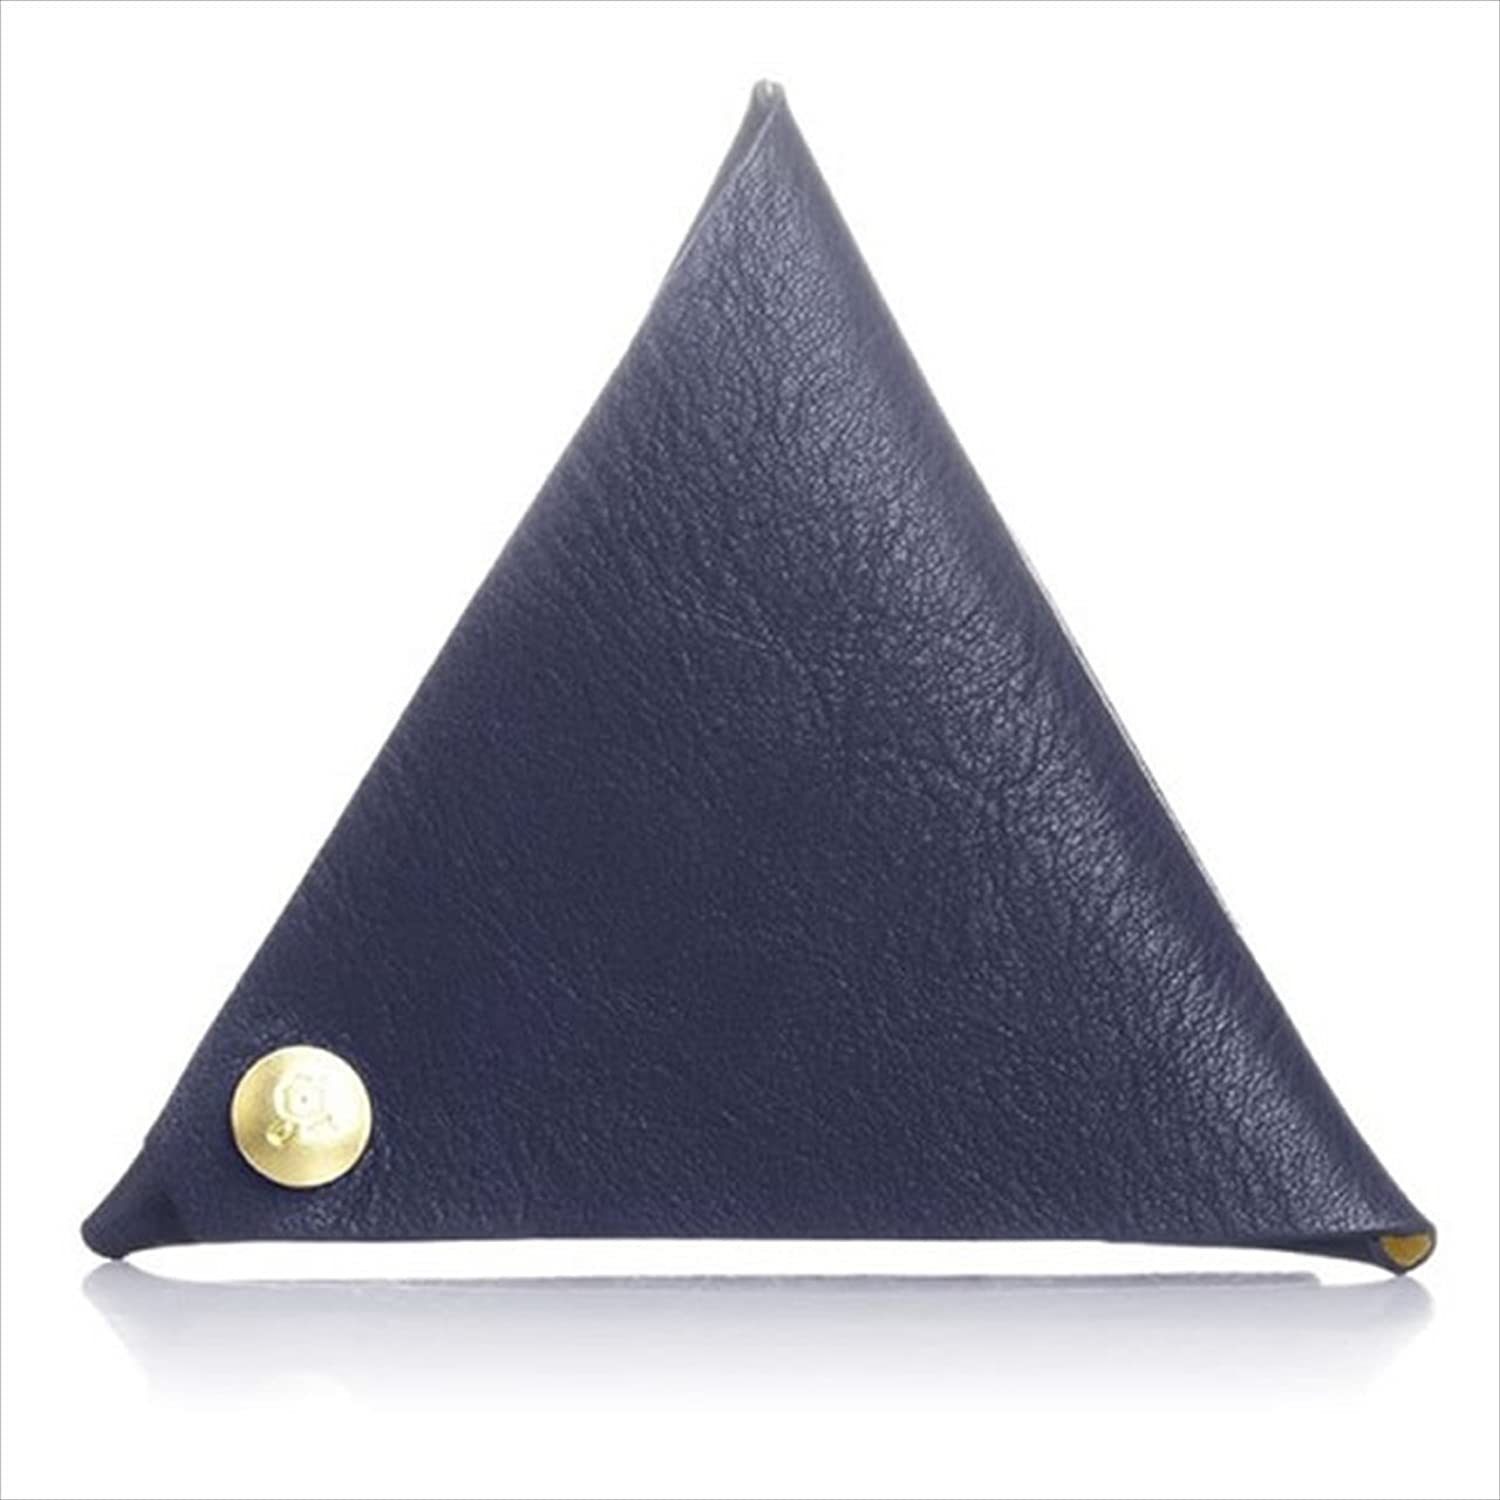 Made in Japan Leather@Coin Case Purse Pouch Wallet 1312 Navy&Yellow потолочный светильник sonex duna 253 хром